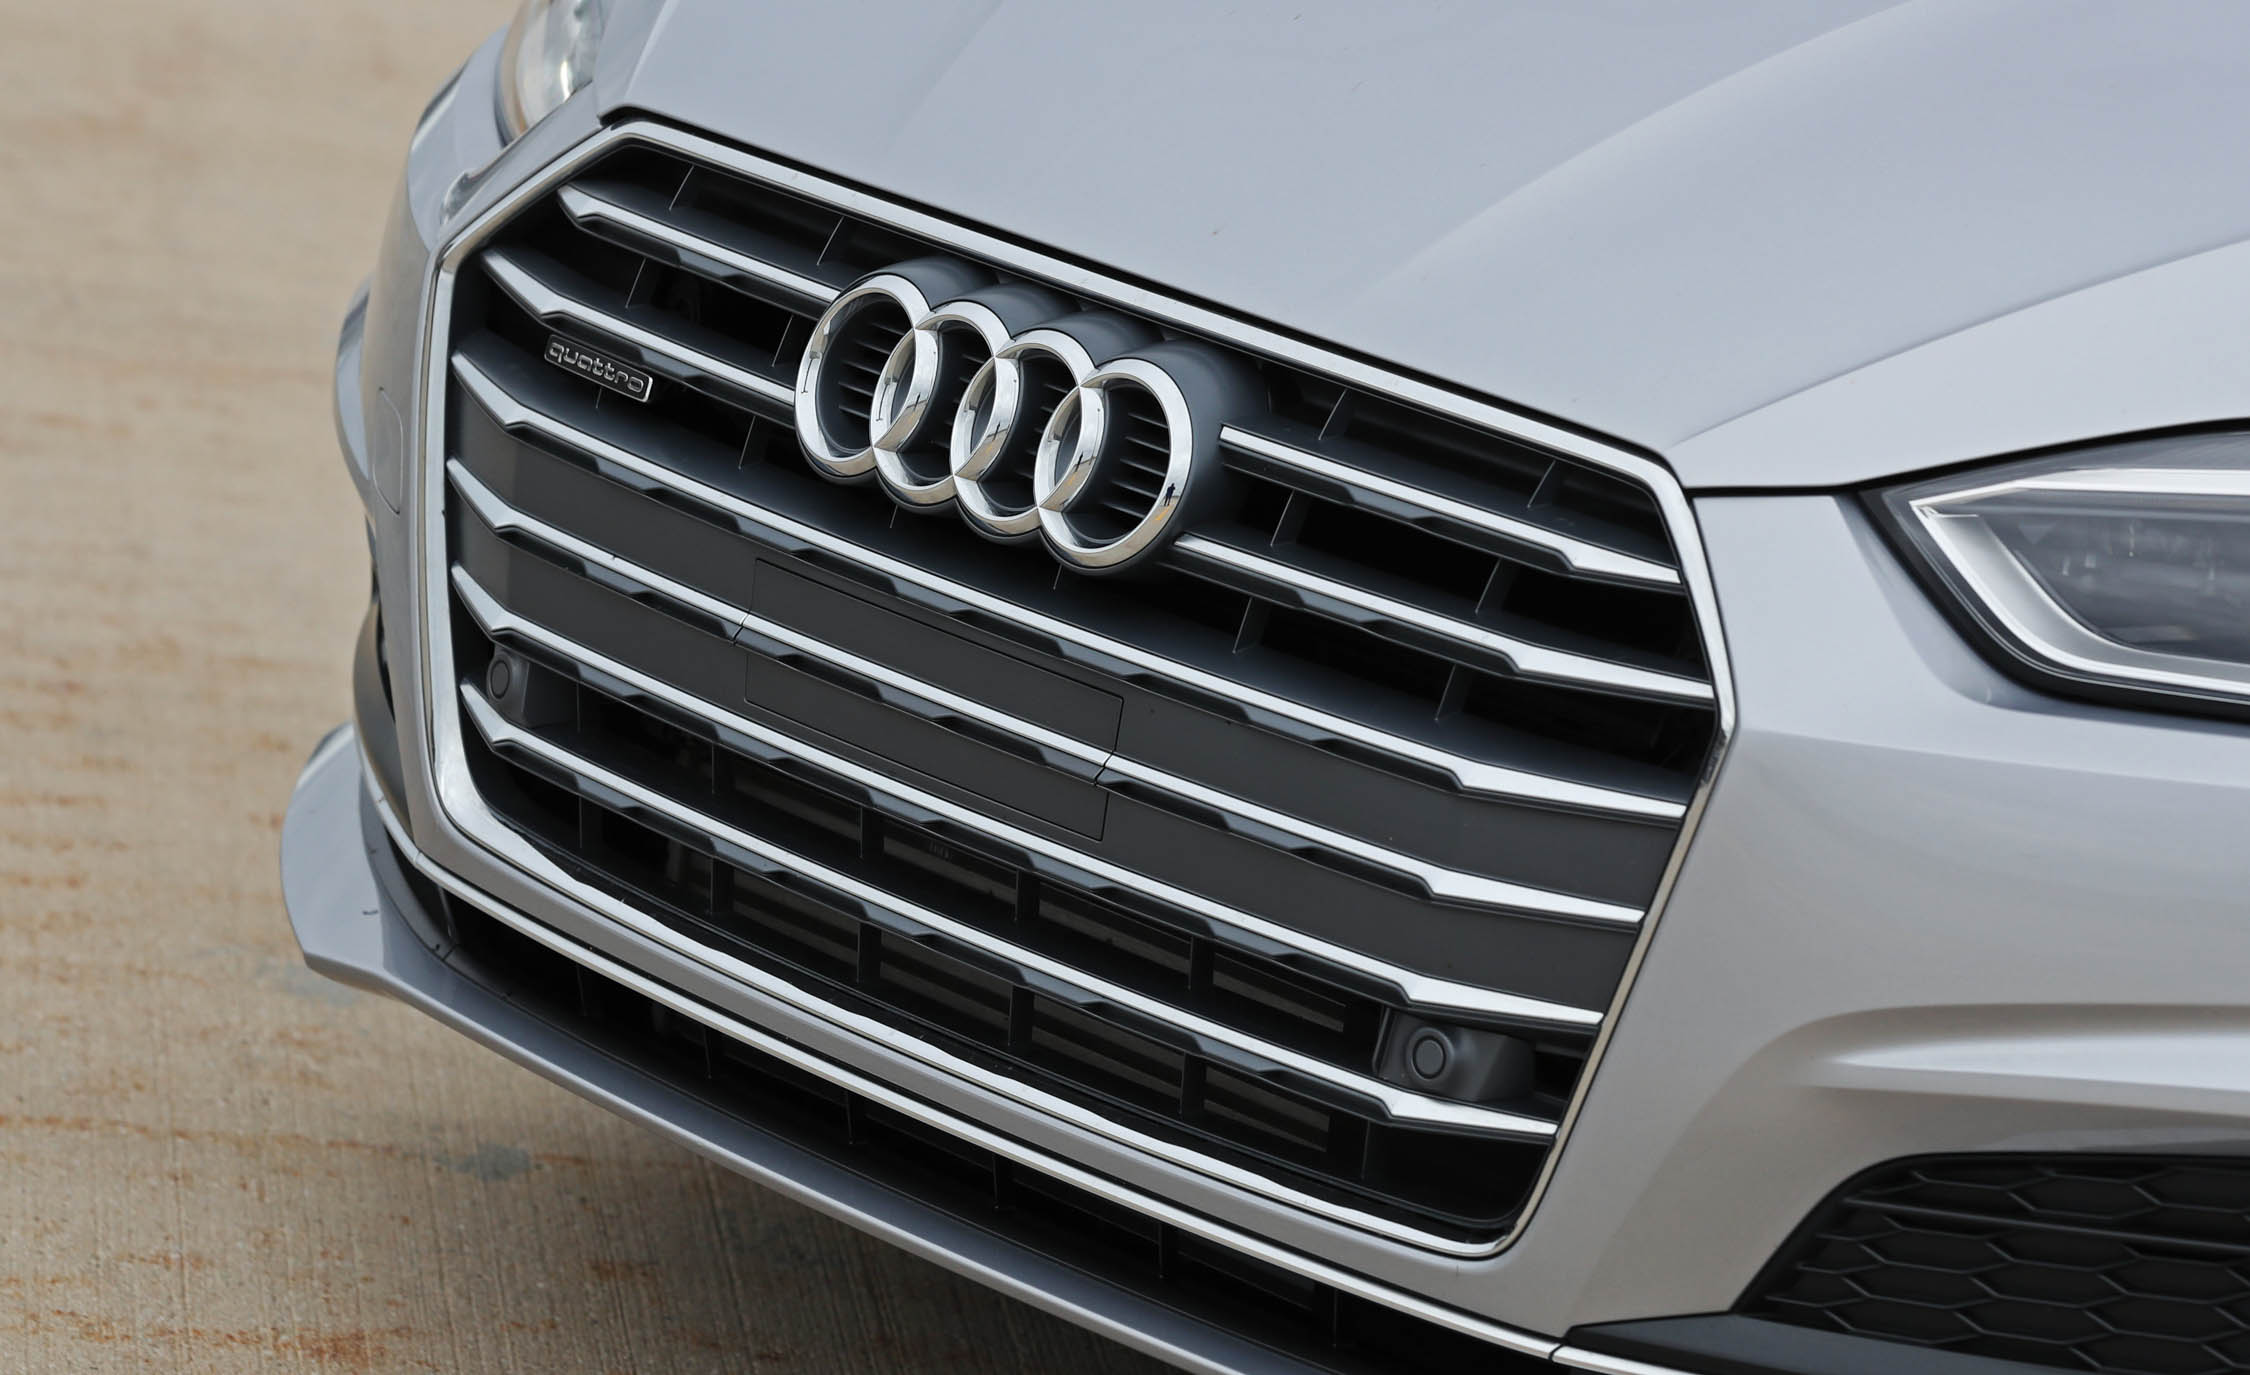 2018 Audi A5 Coupe Exterior View Grille (Photo 9 of 50)